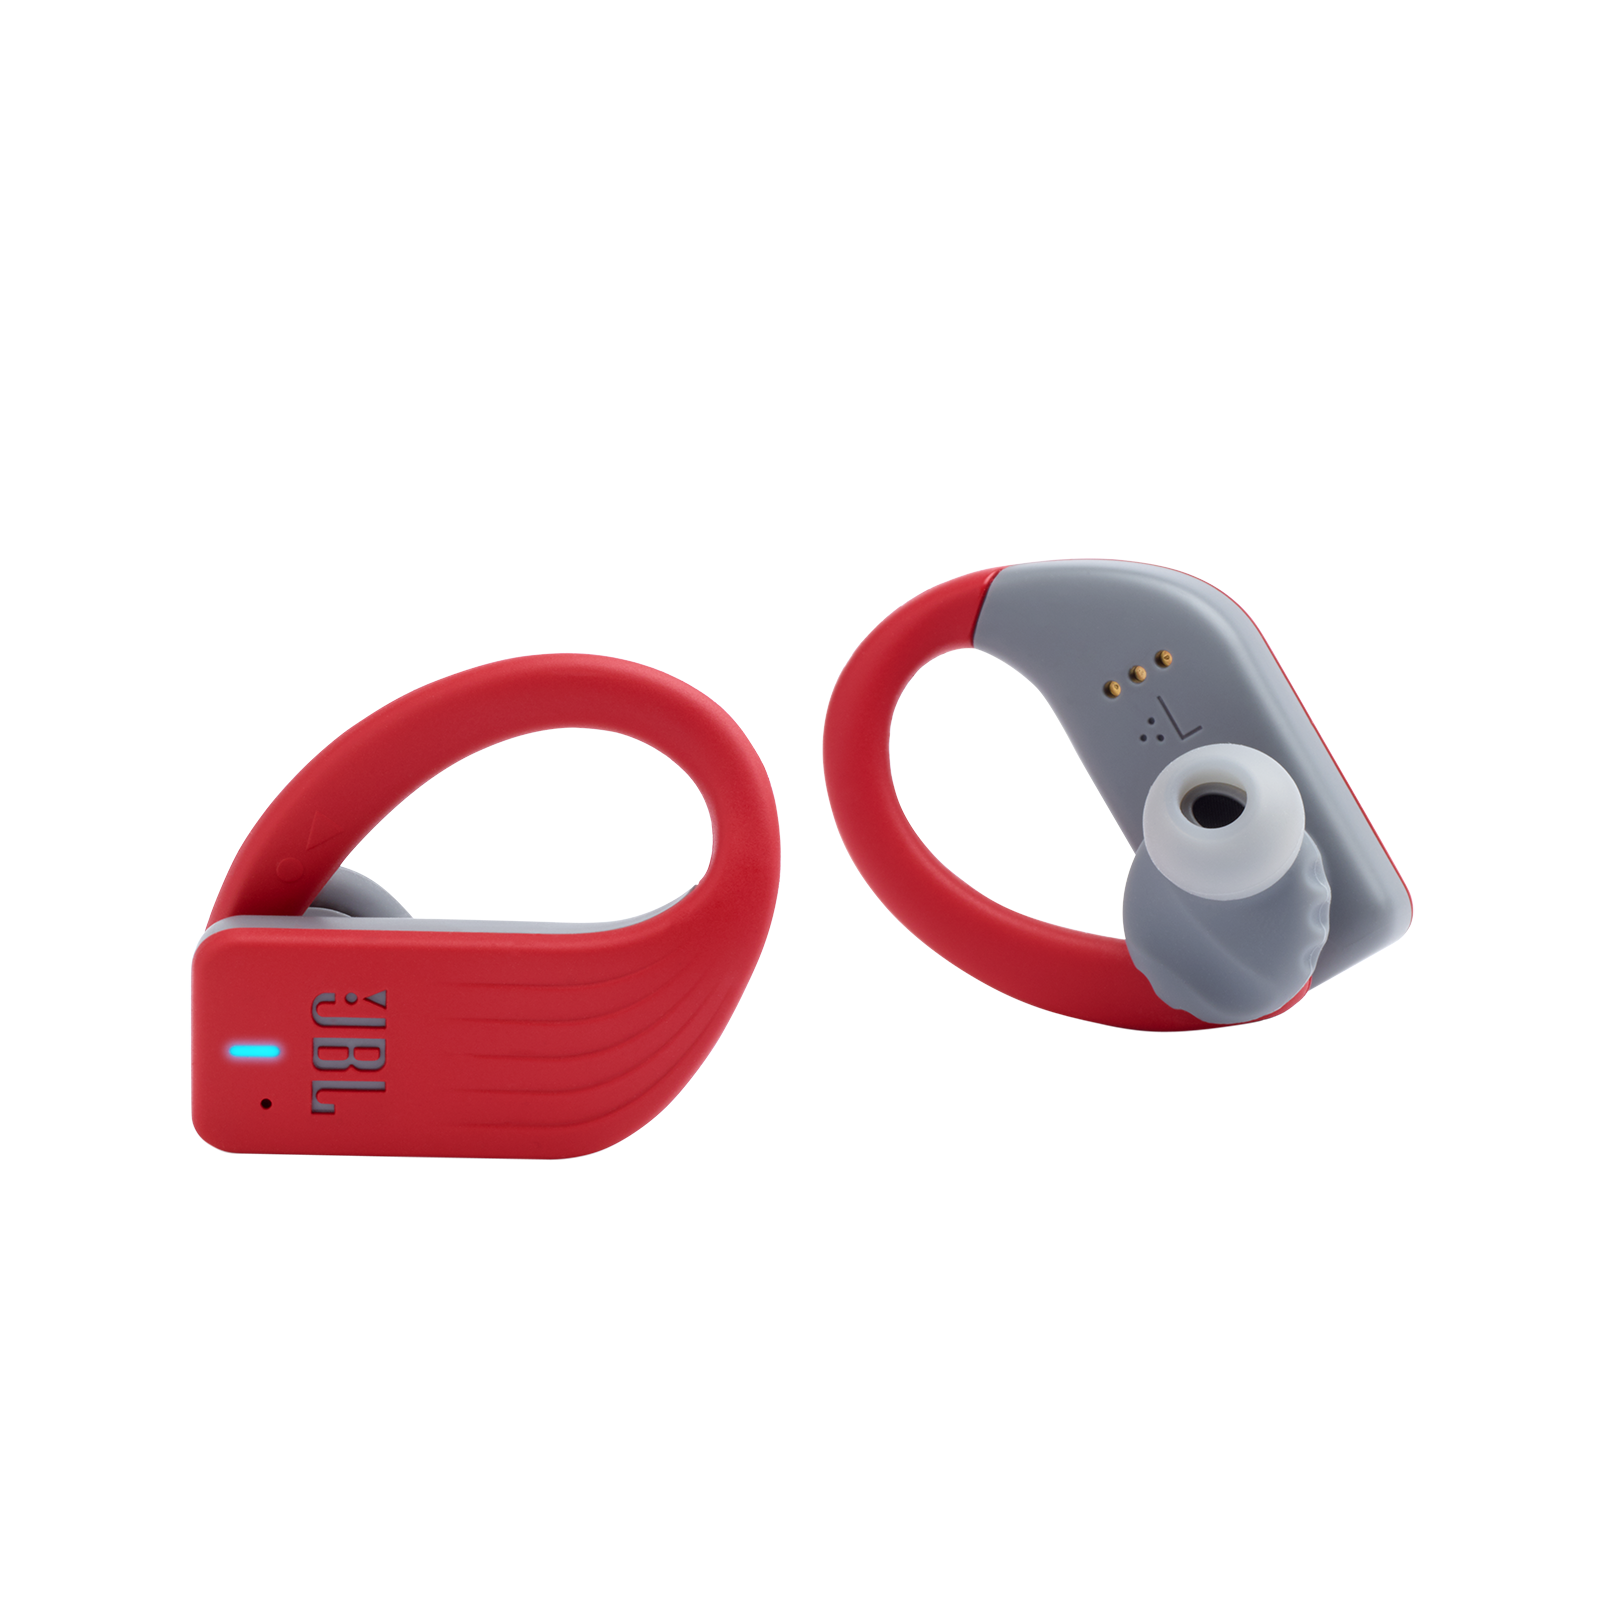 JBL Endurance PEAK - Red - Waterproof True Wireless In-Ear Sport Headphones - Detailshot 1